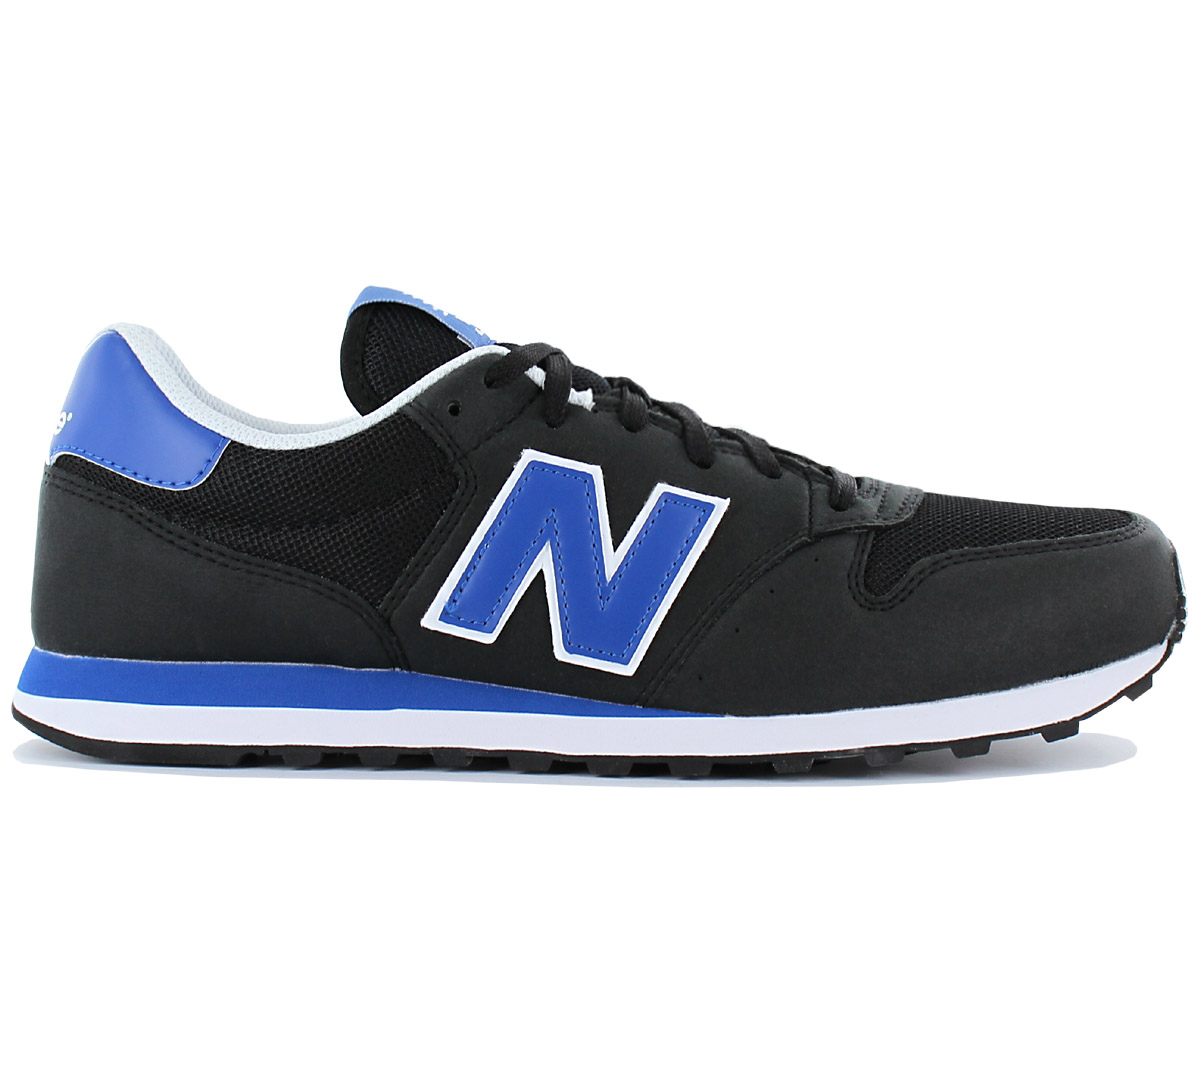 Details about New Balance Classic 500 Men s Sneakers Shoes Black Trainers  Nb GM500LY New 31c0ca7bd07